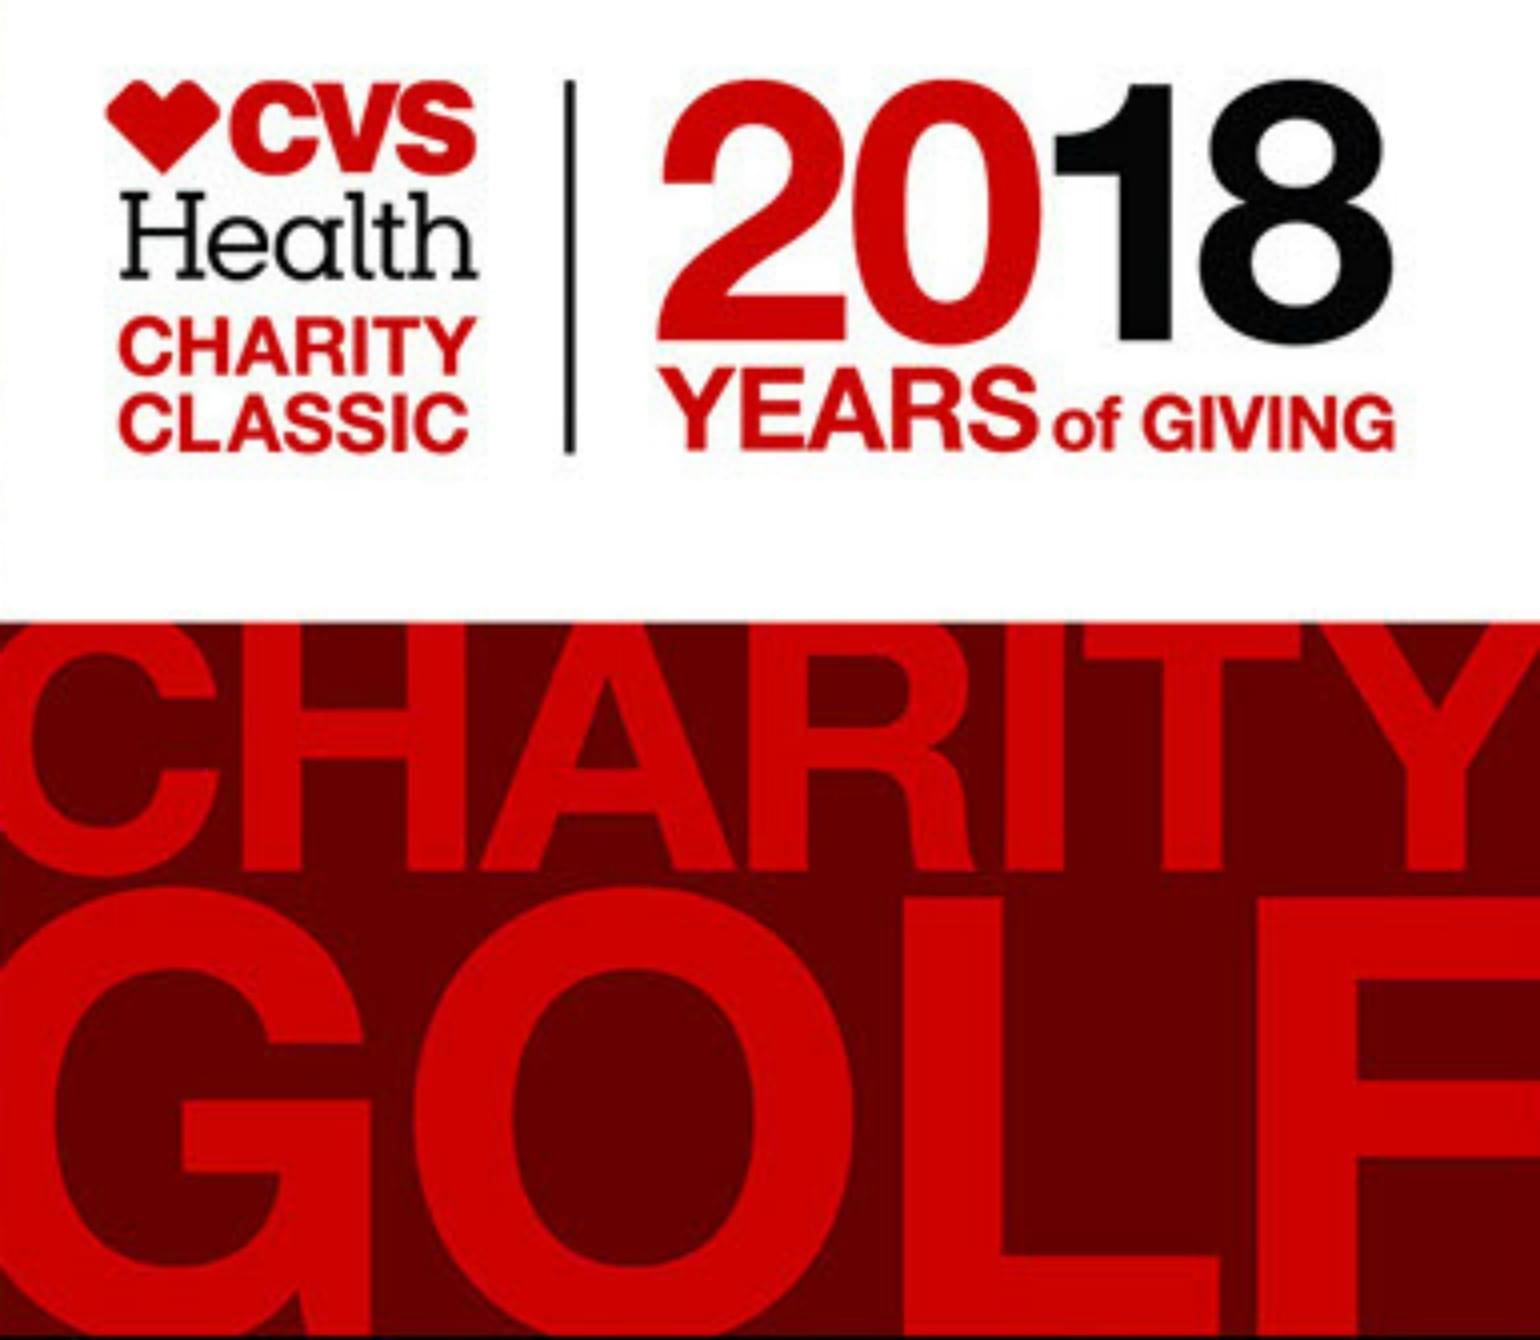 Heather & Steve with Golfer Brad Faxon about the 2018 CVS Health Charity Classic